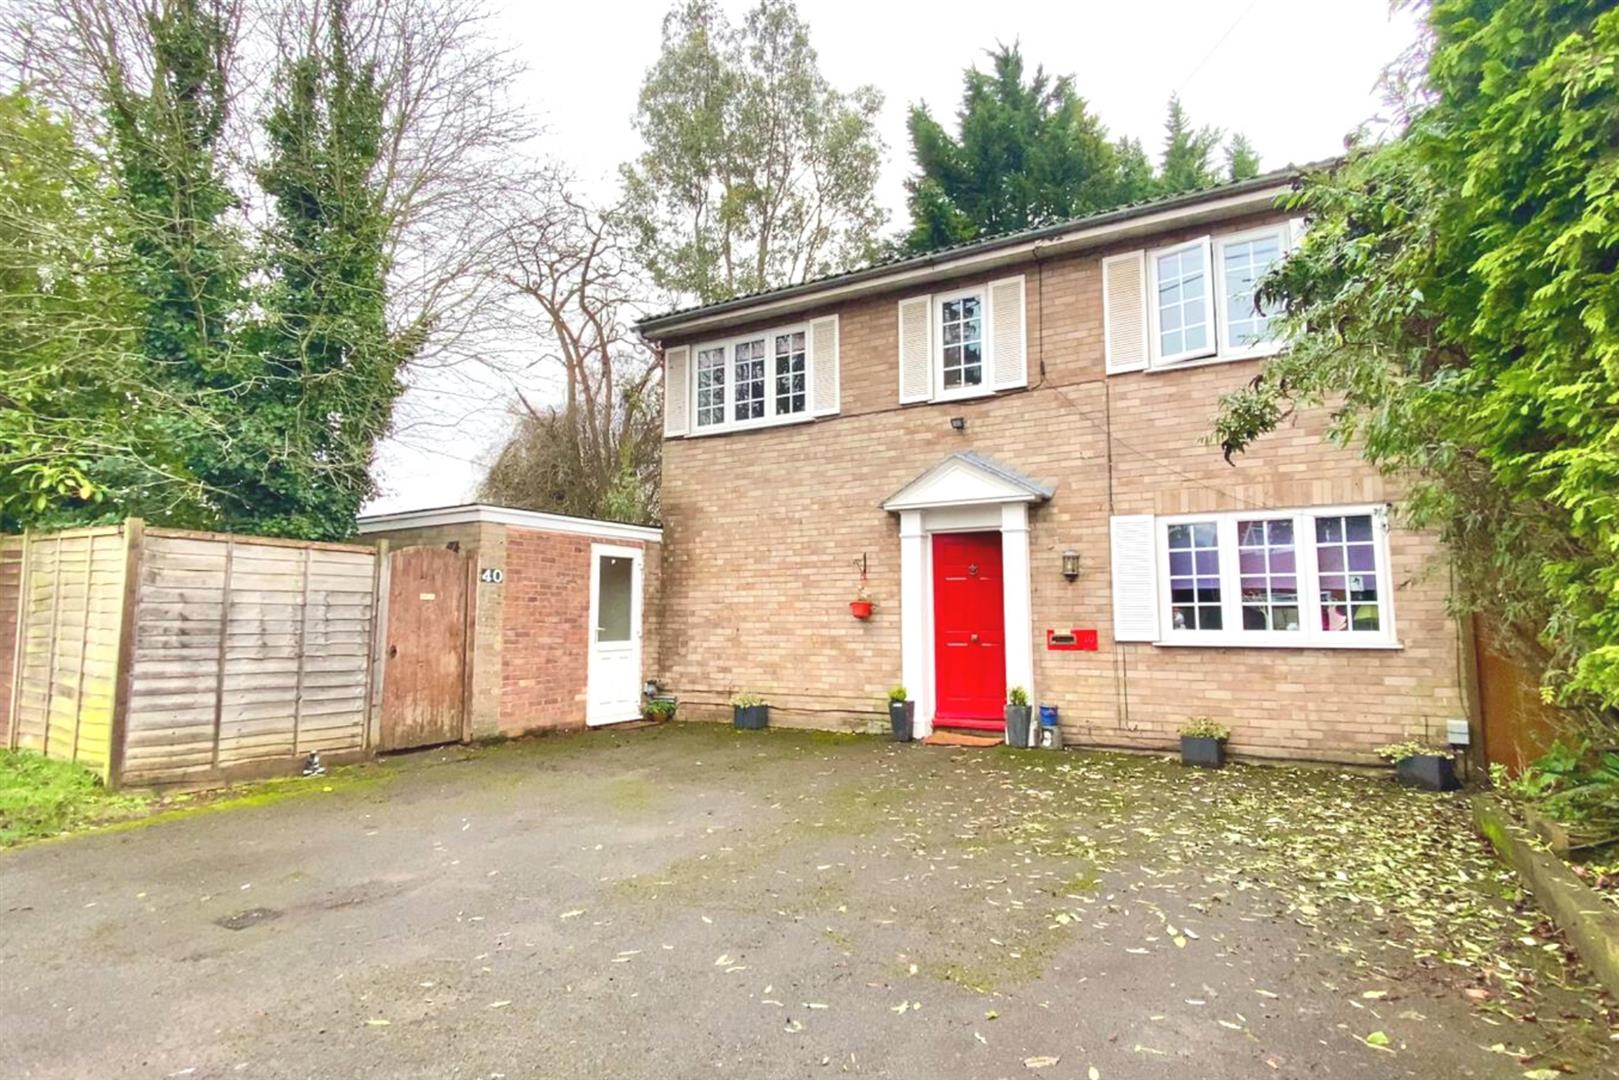 4 bed detached for sale in Charvil, RG10